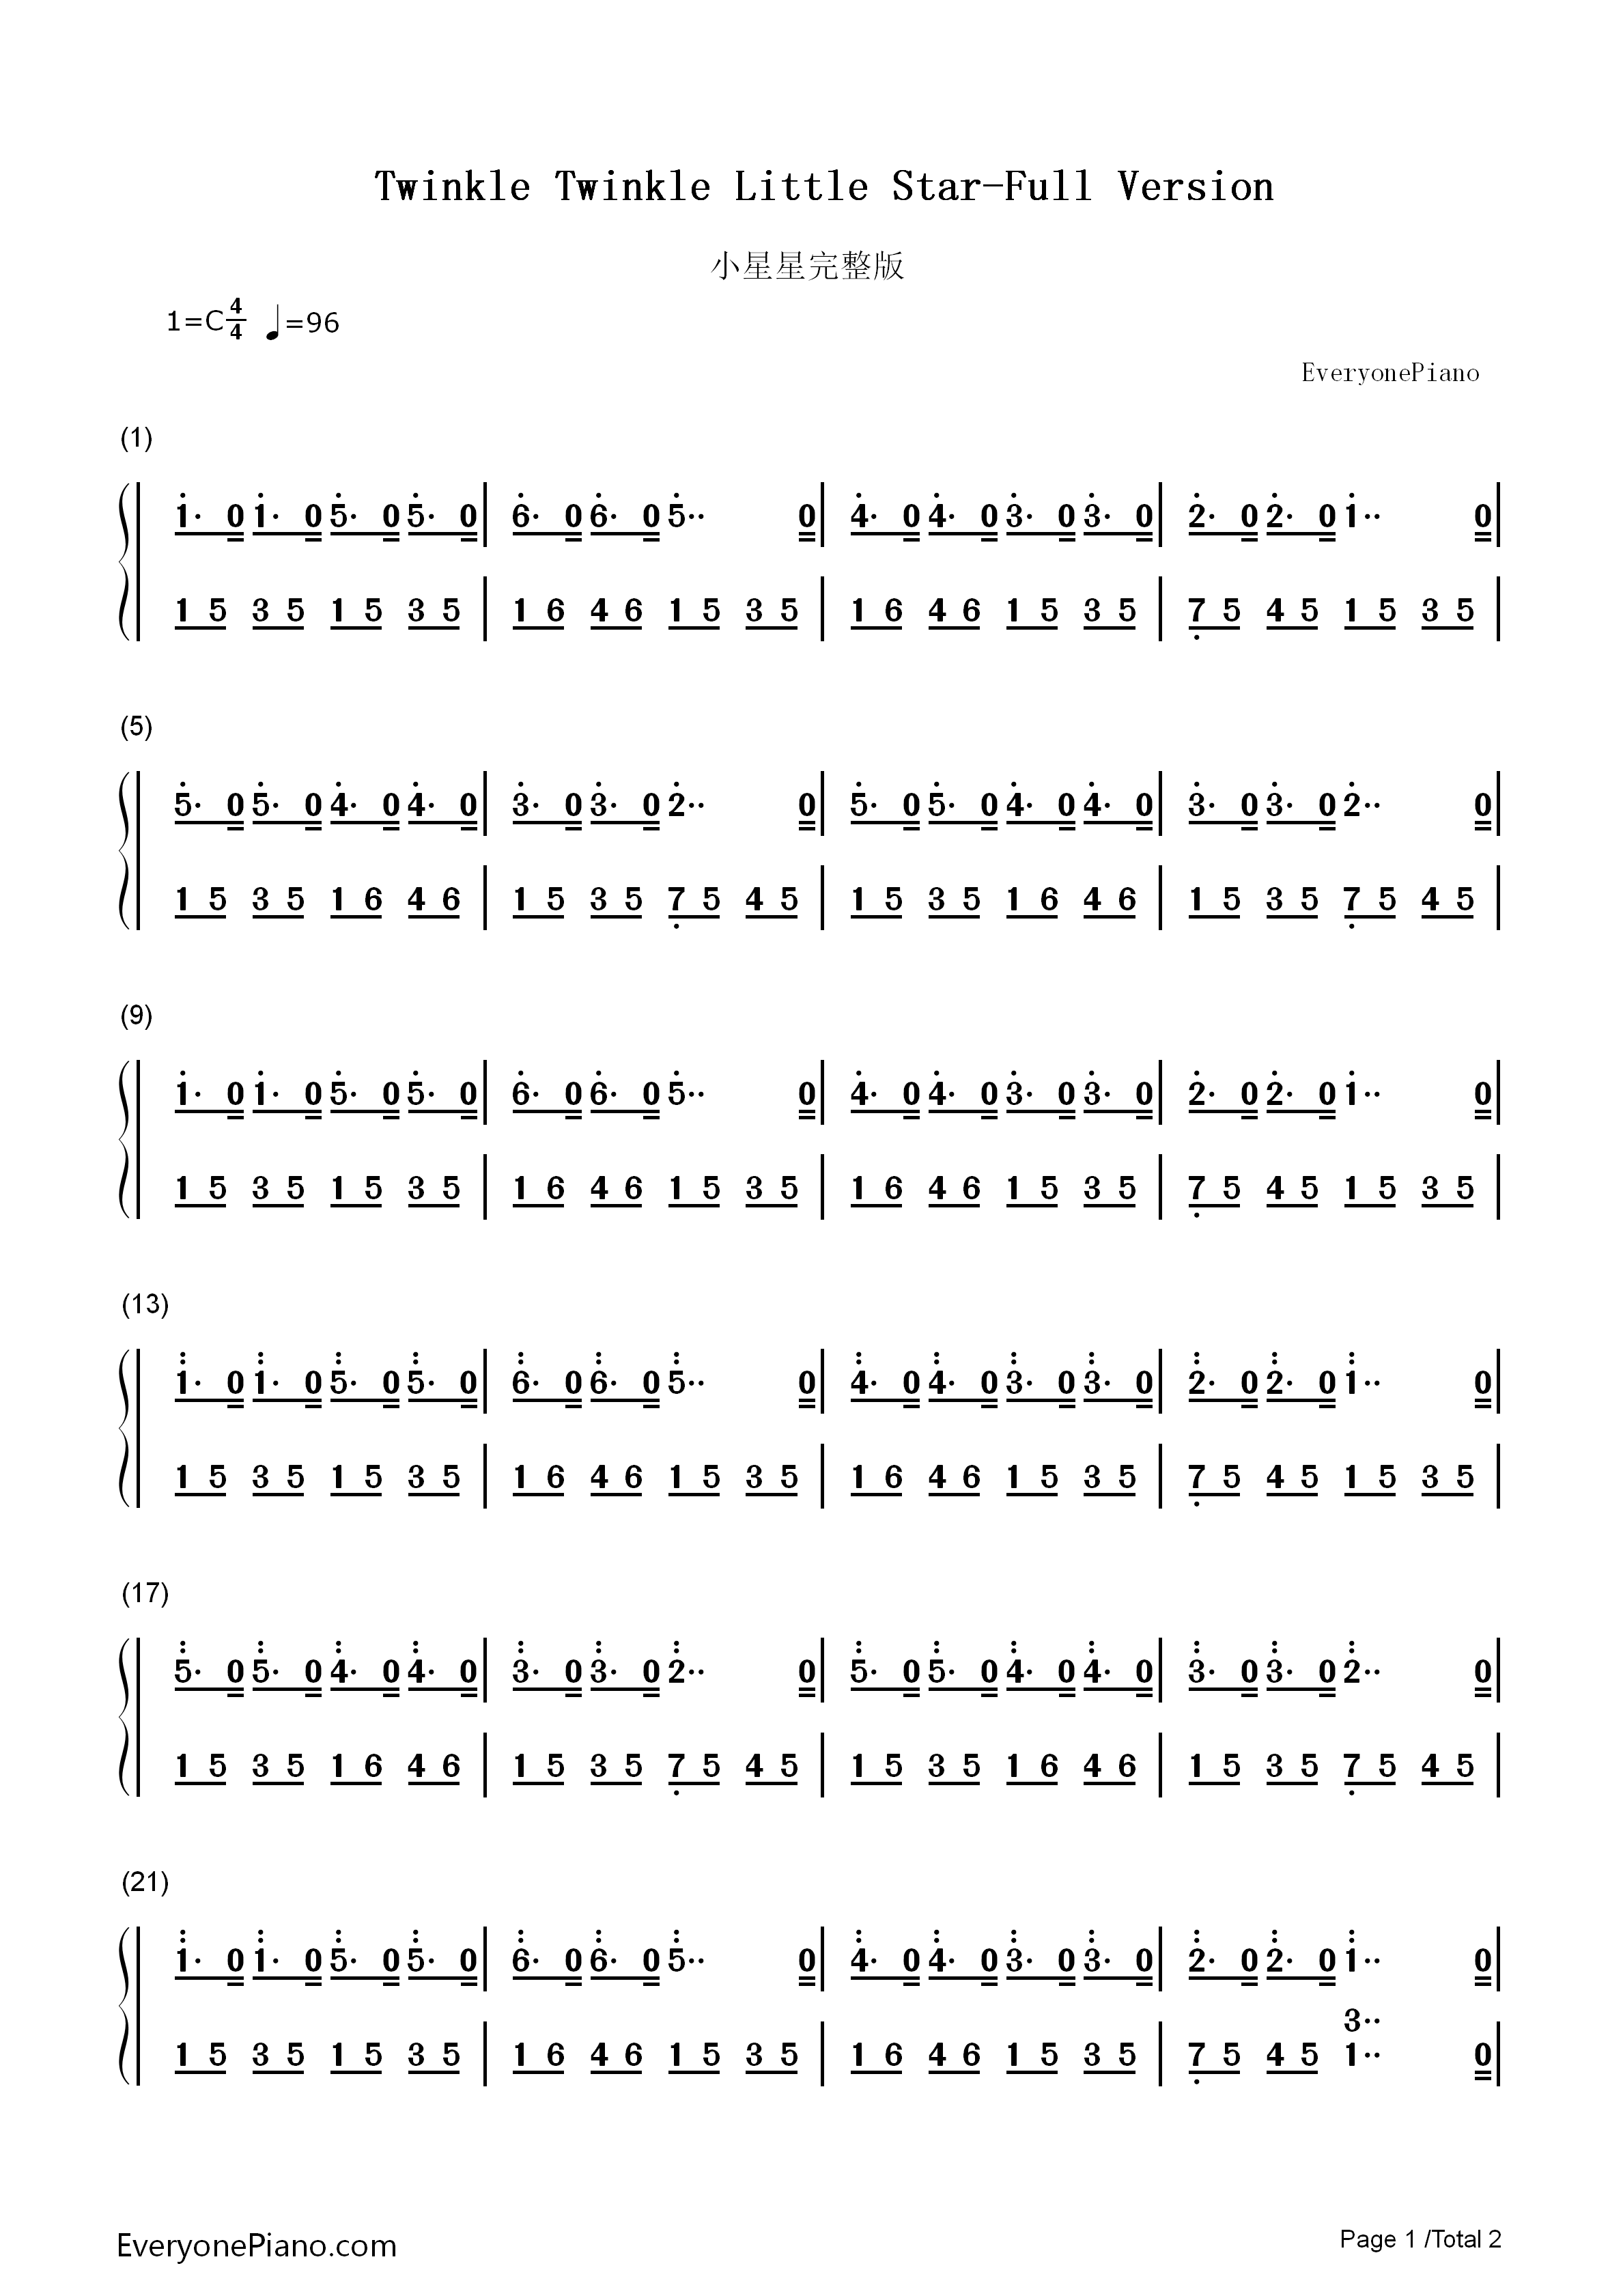 Twinkle twinkle little star full version numbered musical notation listen now print sheet twinkle twinkle little star full version numbered musical notation preview 1 hexwebz Gallery